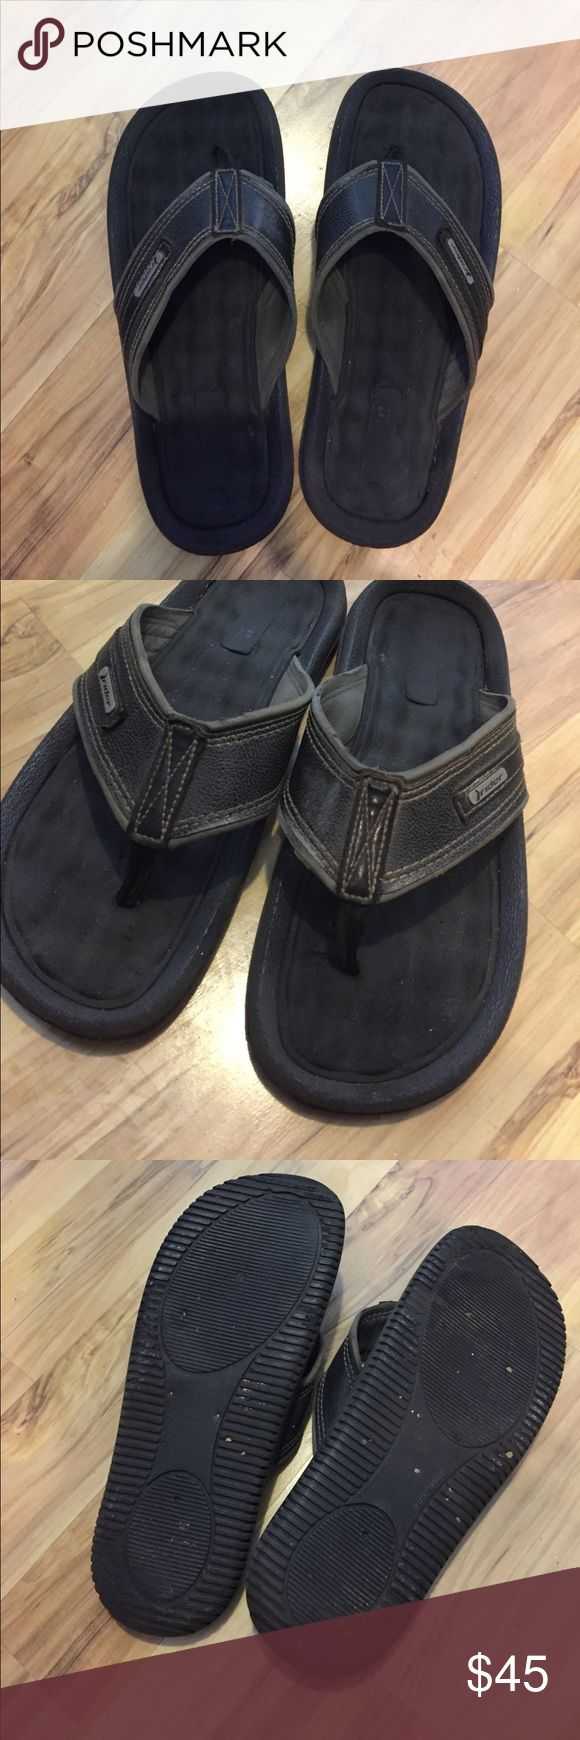 Rider Men's Flip Flops Size 11 Worn lightly for 1 month. These have much life left in them! Super comfortable. Rider Shoes Sandals & Flip-Flops